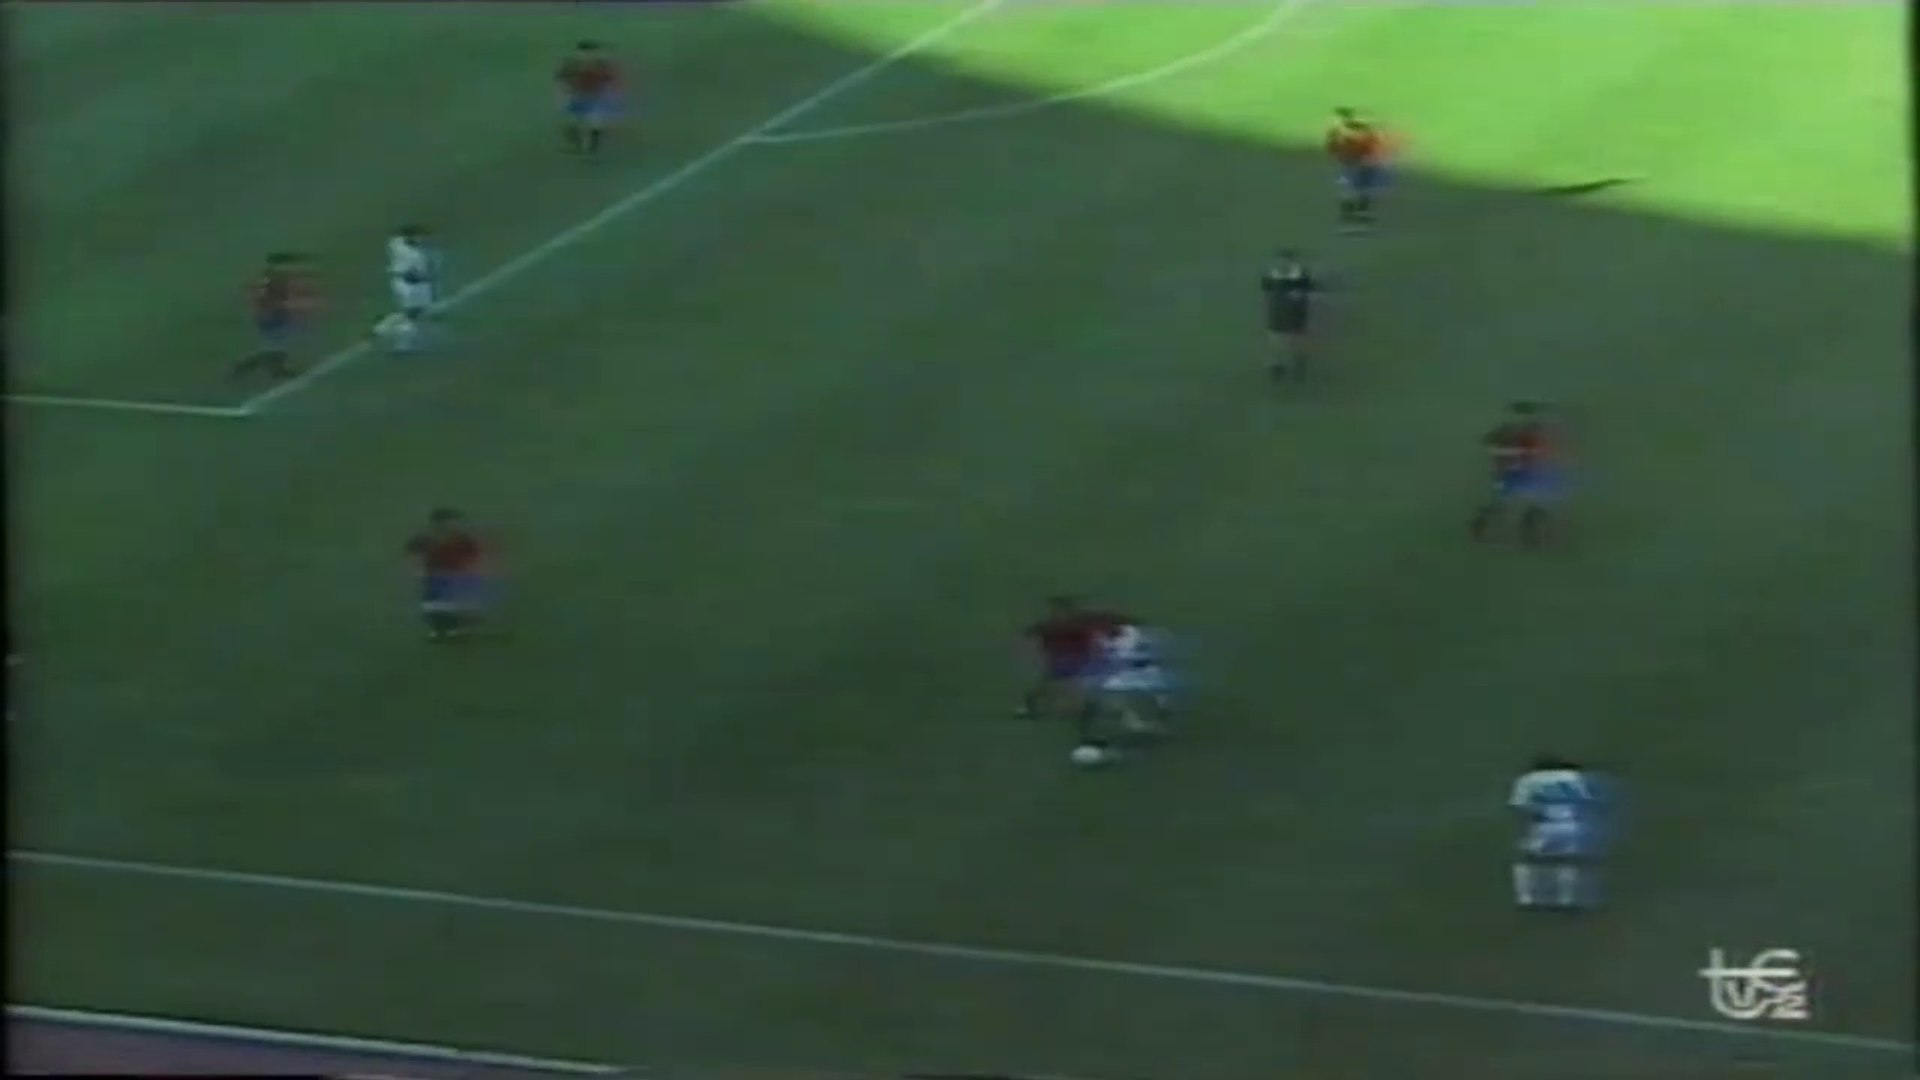 Spain 1:2 Yugoslavia ● World Cup 1990 ● Second half